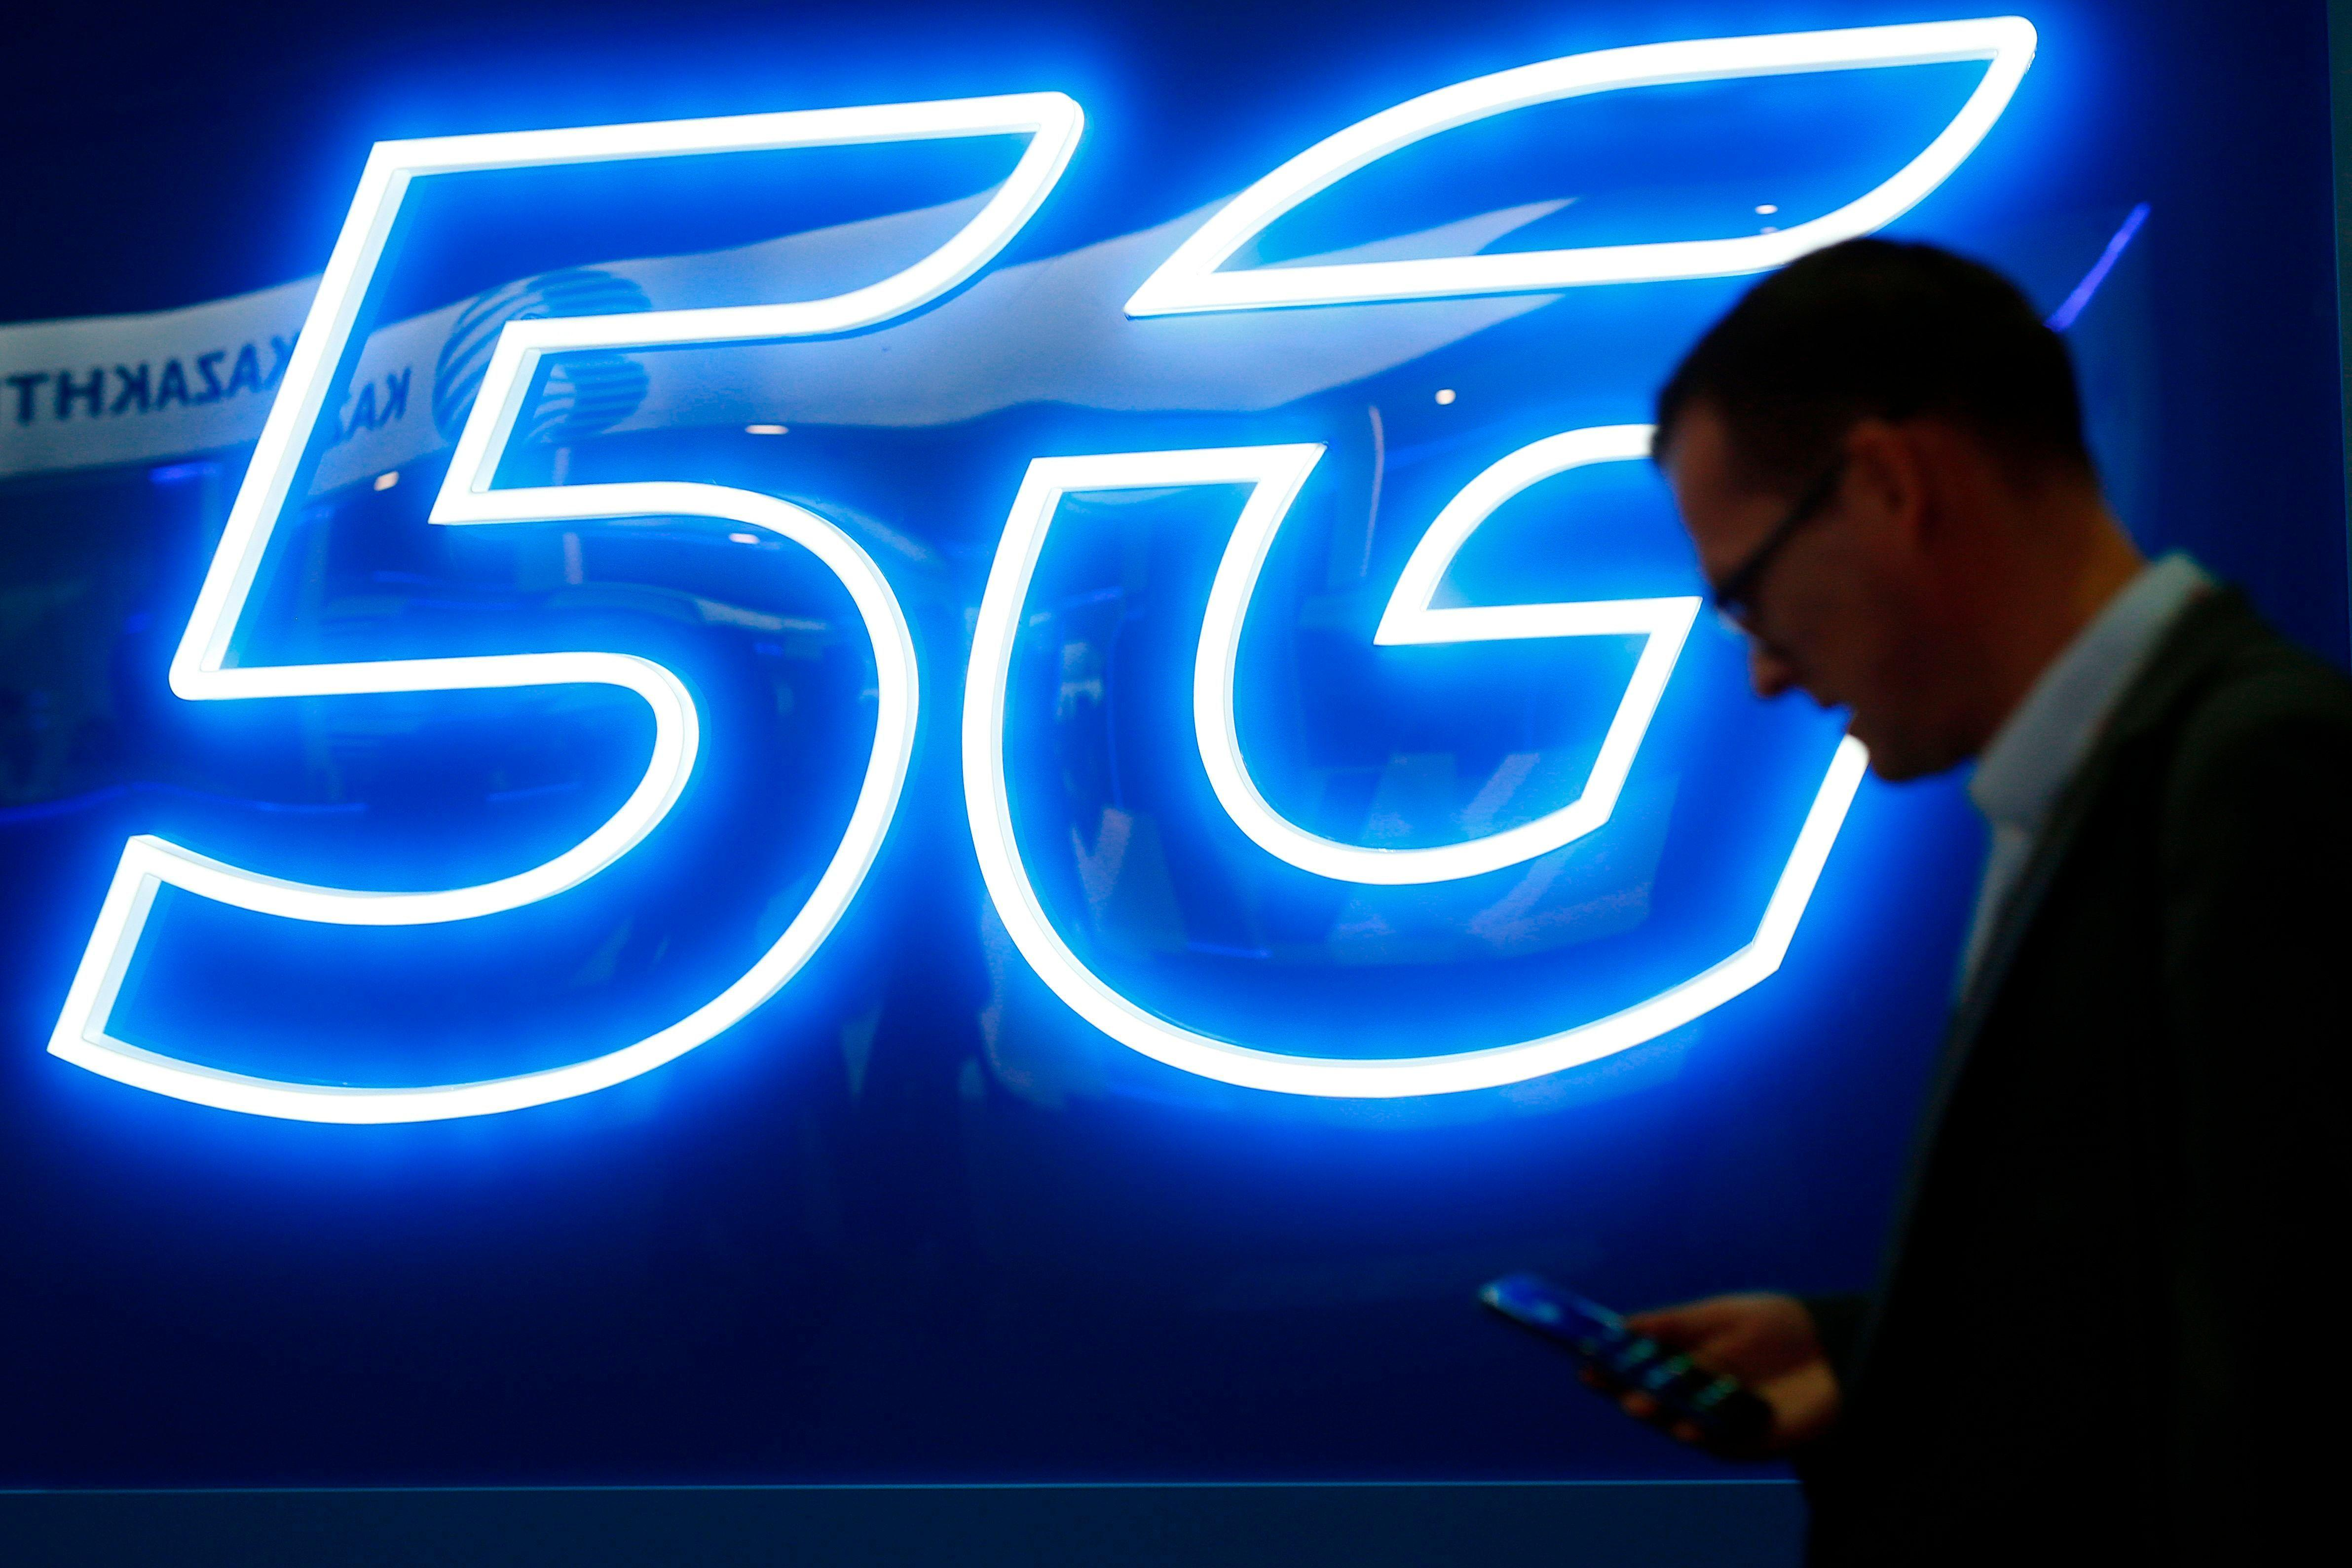 No, you don't need a 5G phone yet